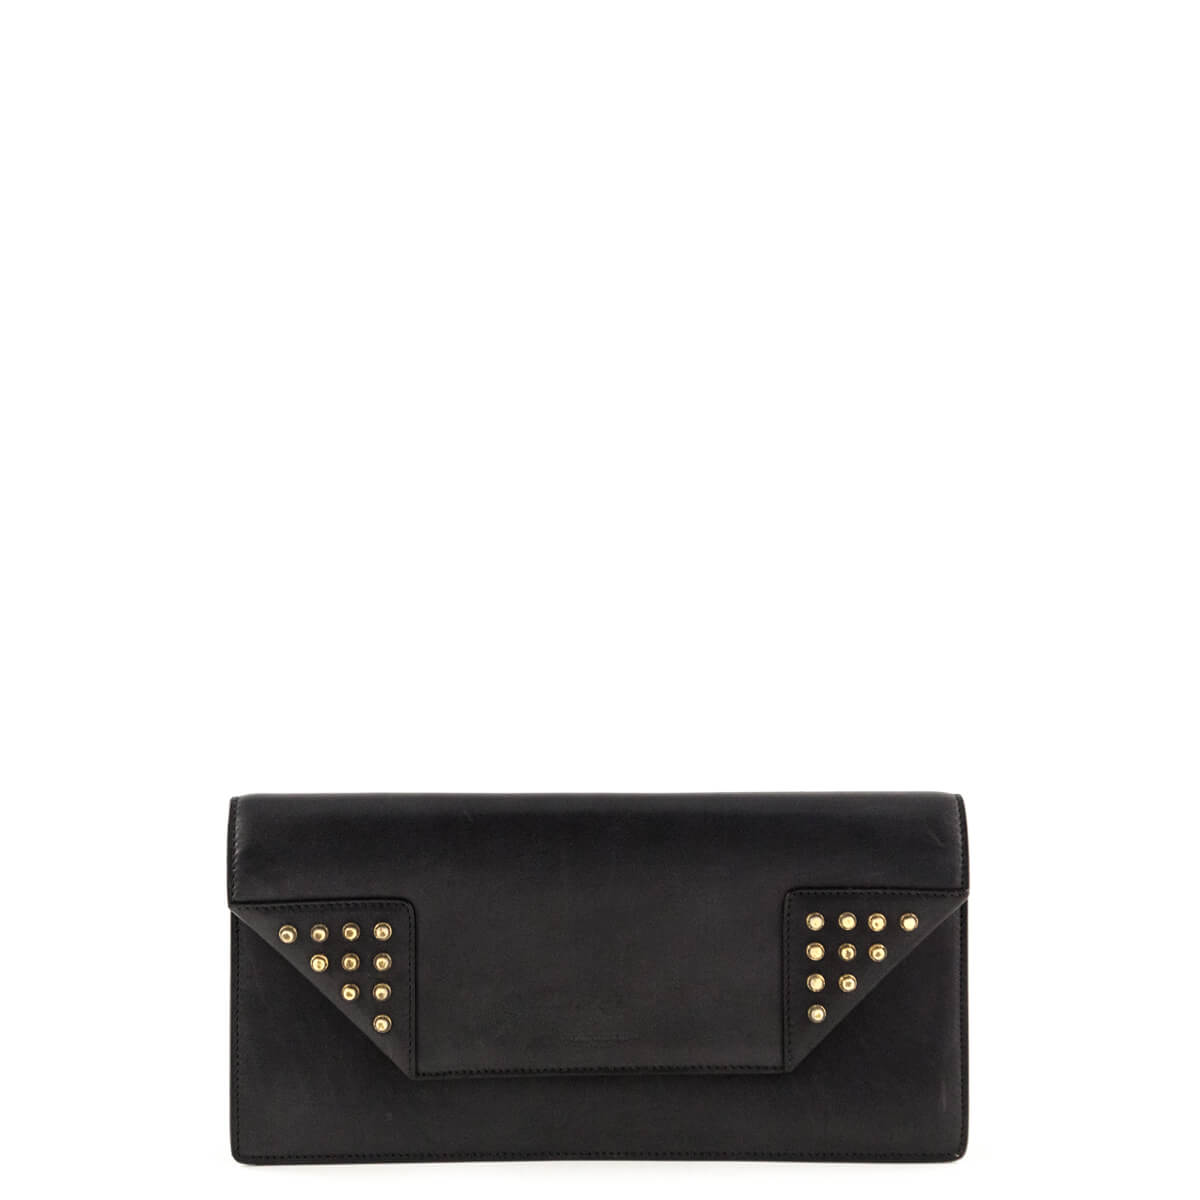 17440f07ef73 Saint Laurent Black Studded Betty Clutch - LOVE that BAG - Preowned  Authentic Designer Handbags ...